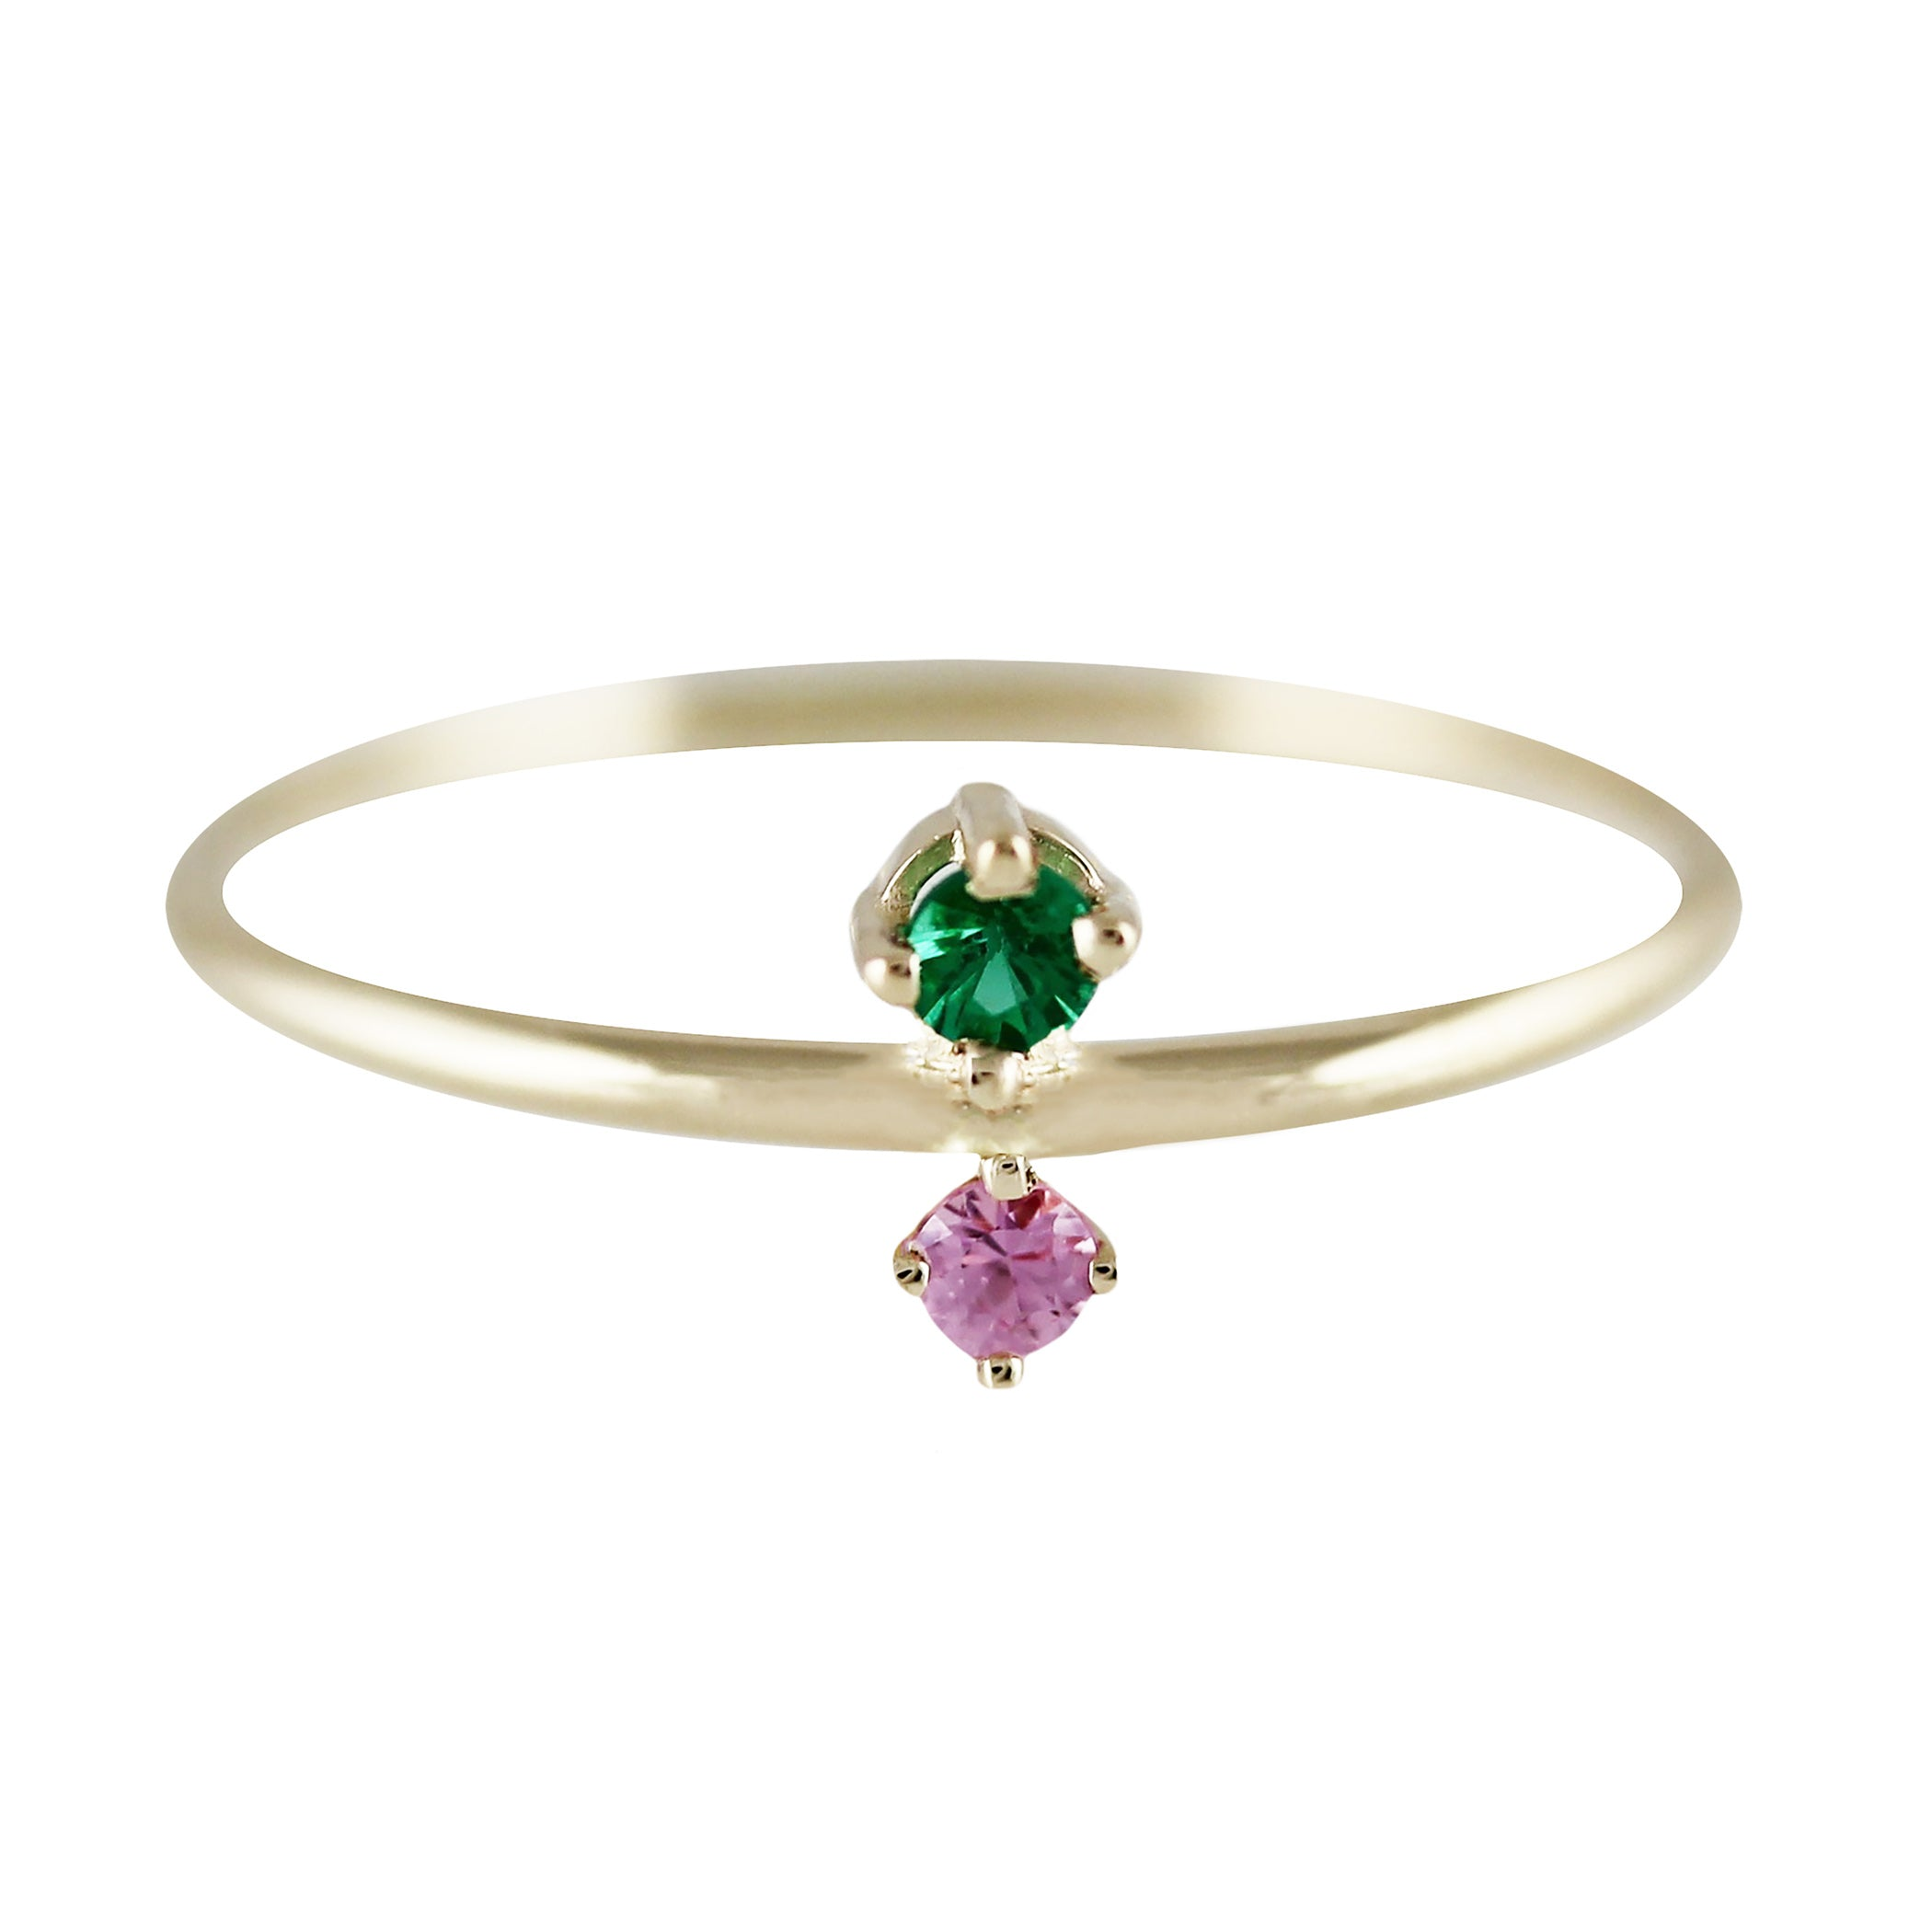 JUMELLE EMERALD AND SAPPHIRE RING